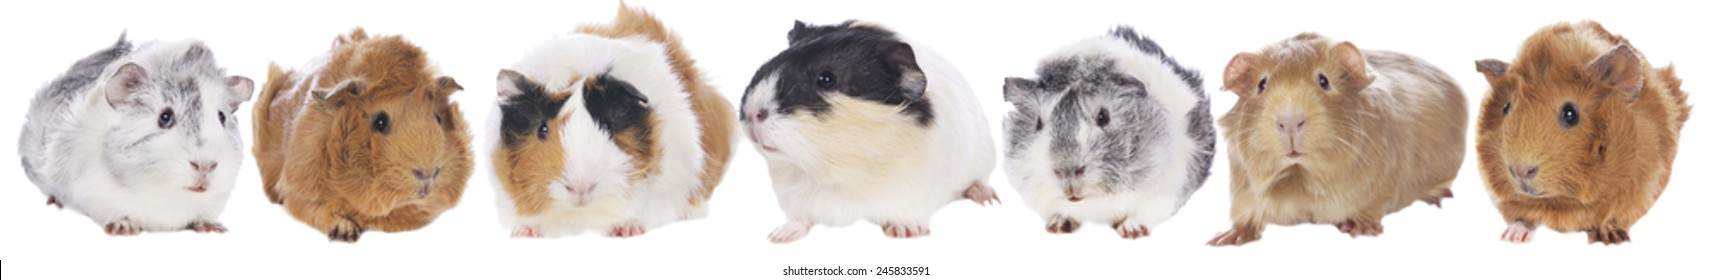 Group of guinea pigs isolated on white